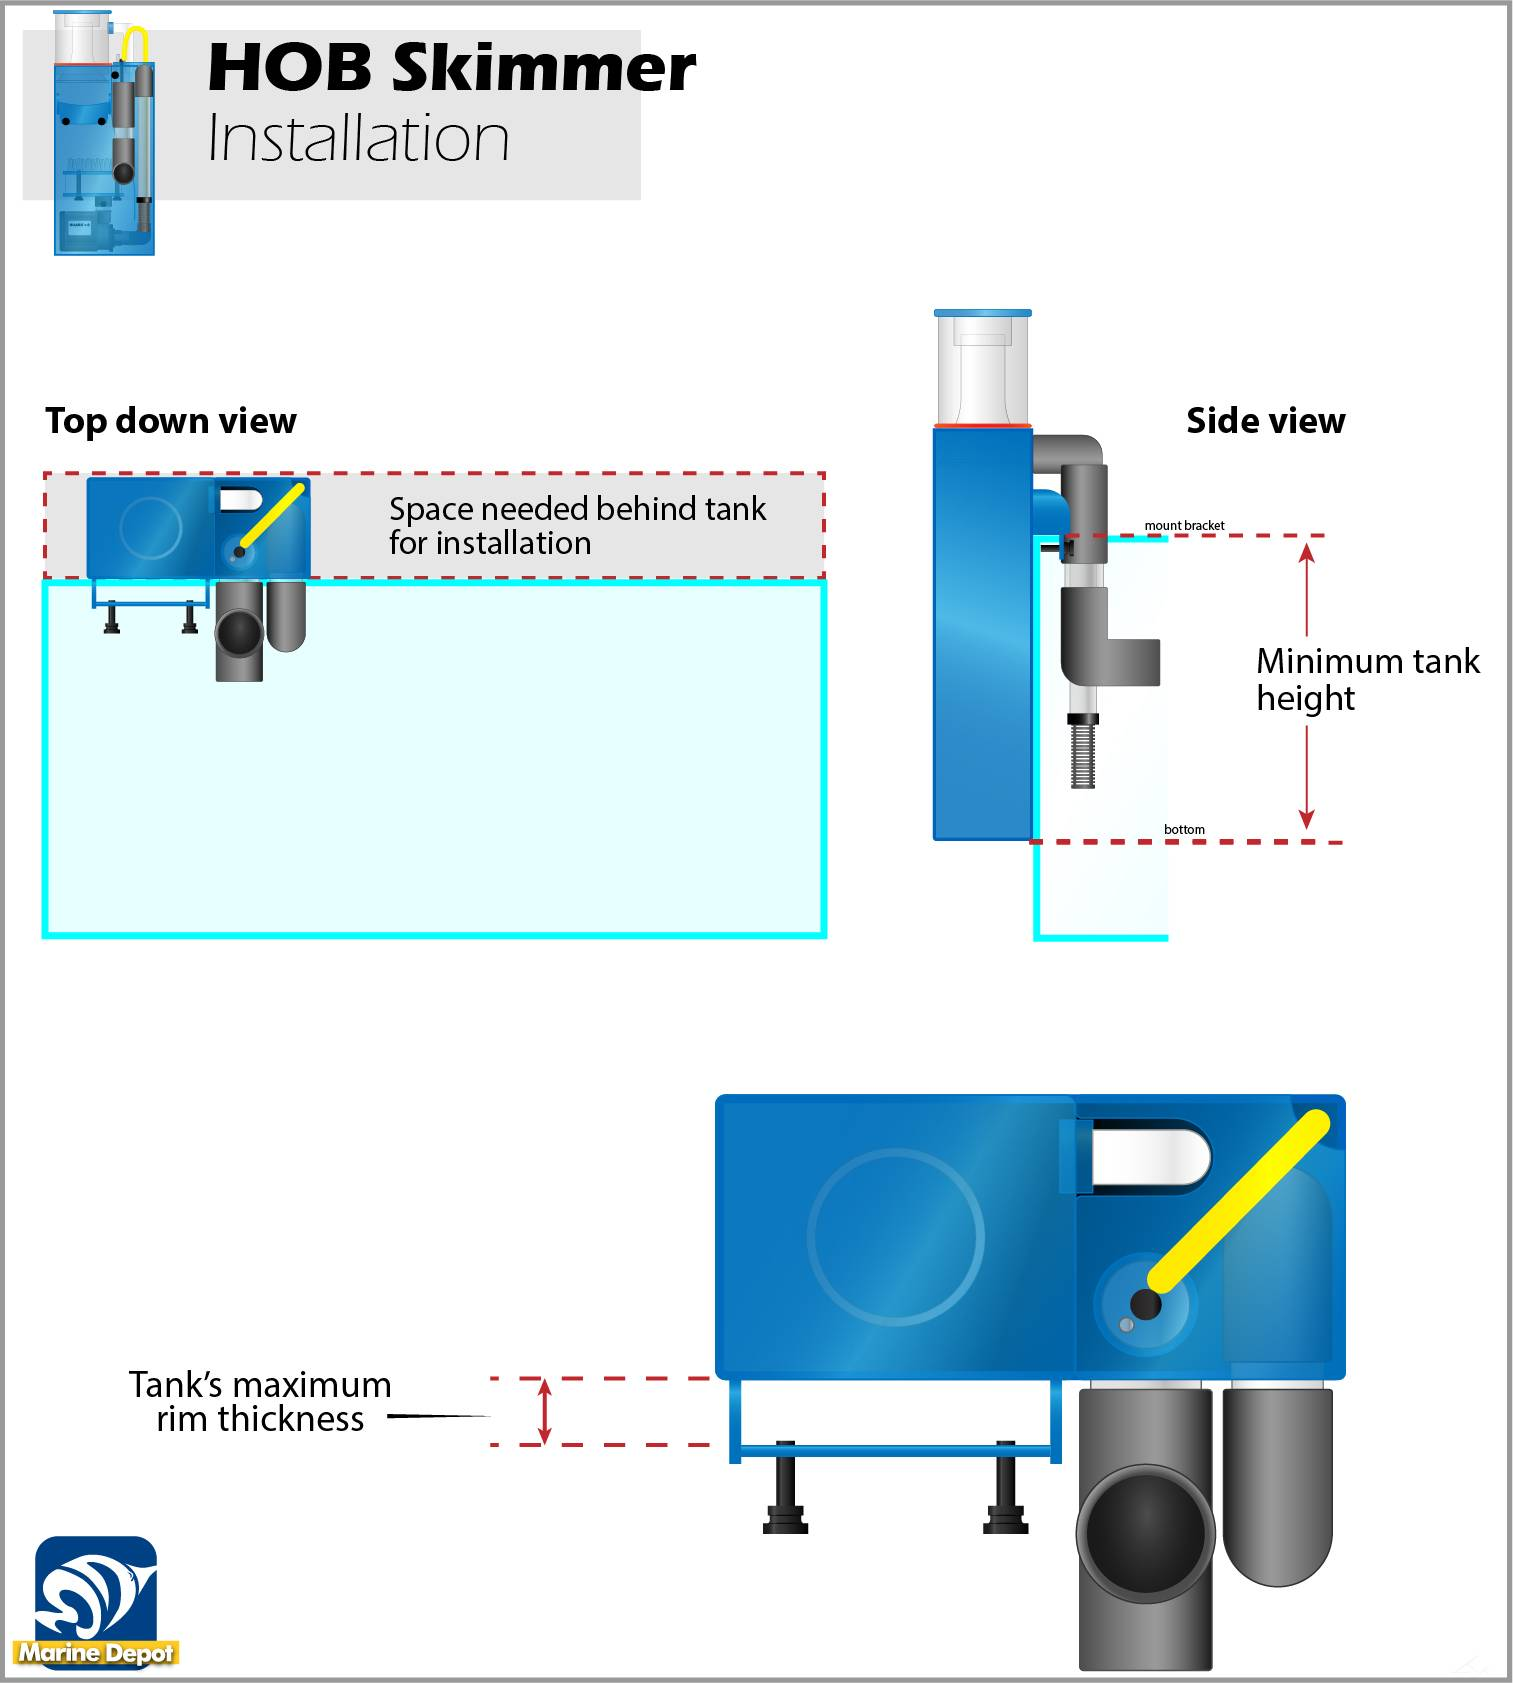 Infographic of requirements needed to install HOB types of skimmers